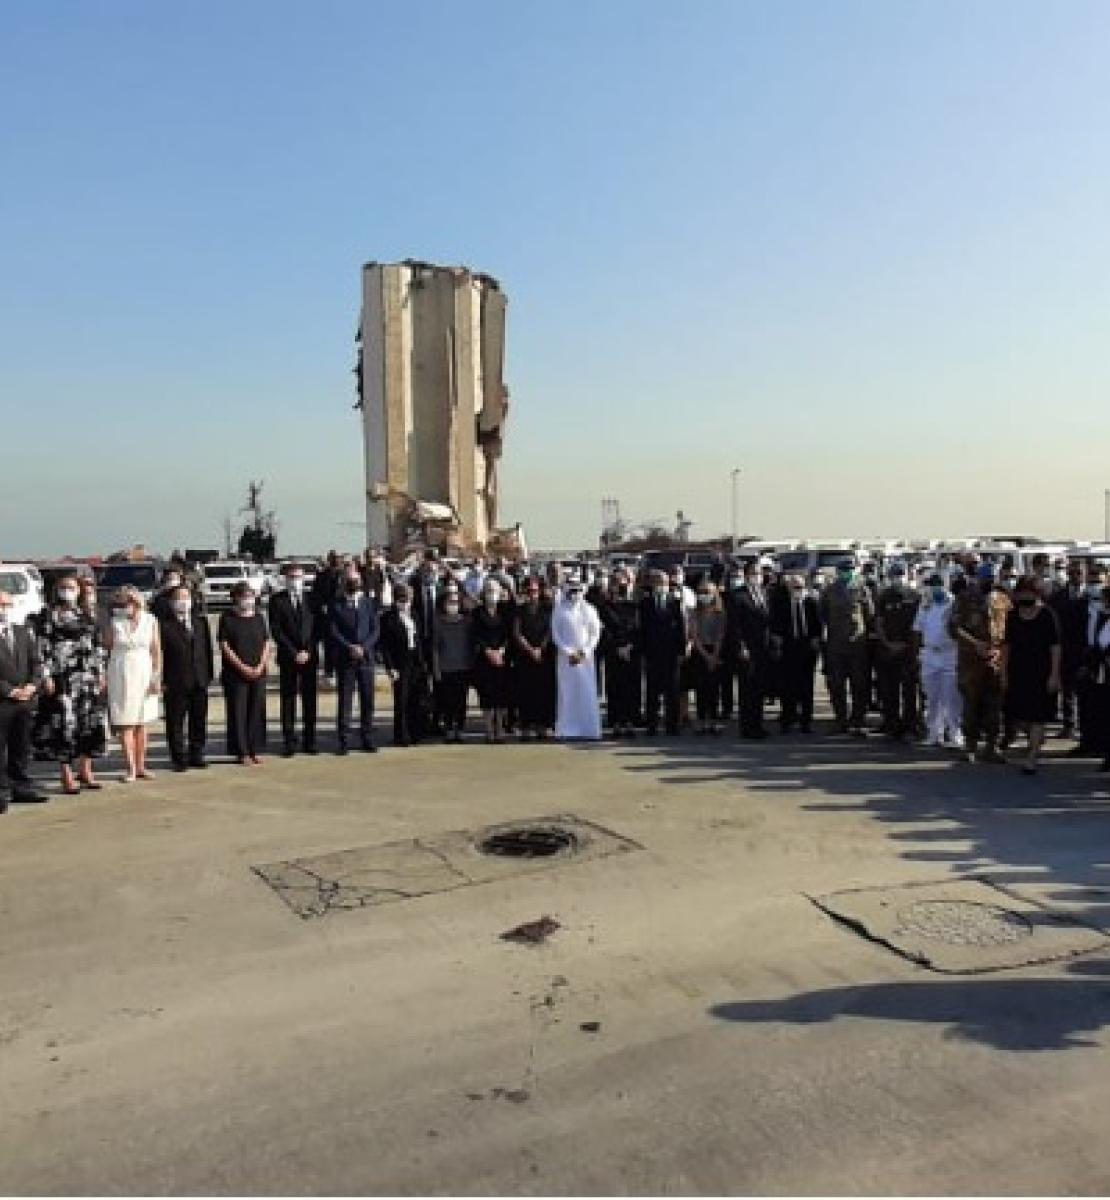 United Nations staff and Diplomatic Corps in Lebanon stand side by side outside as they observe a moment of silence in honour of the people who died in the Beirut port explosions.